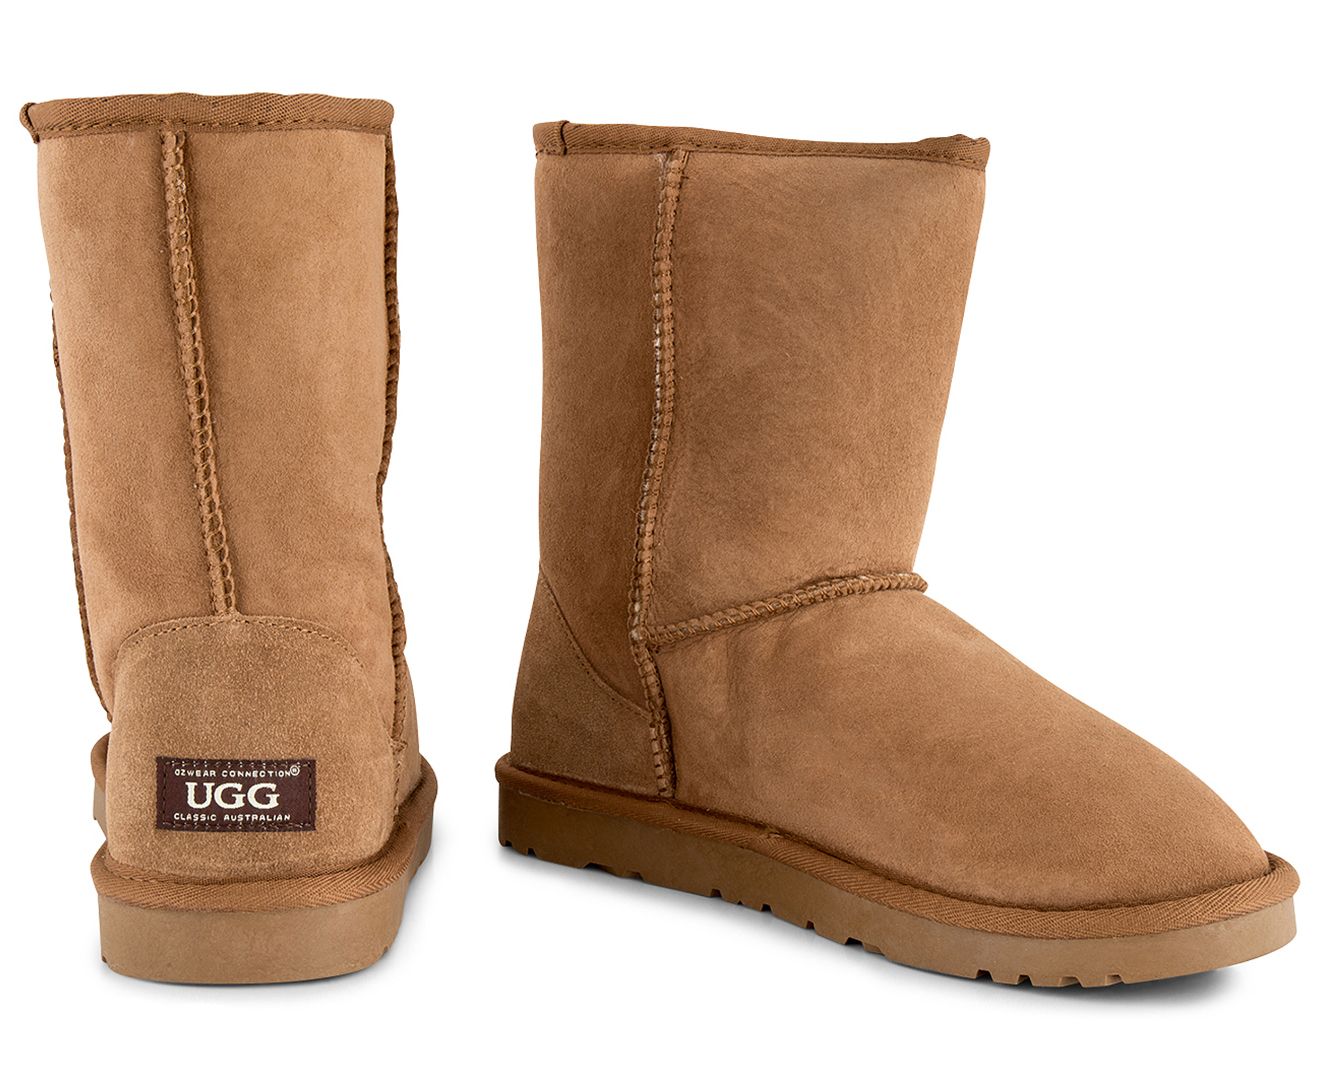 ef1a57c1483 Details about OZWEAR Connection Classic 3/4 Ugg Boot - Chestnut